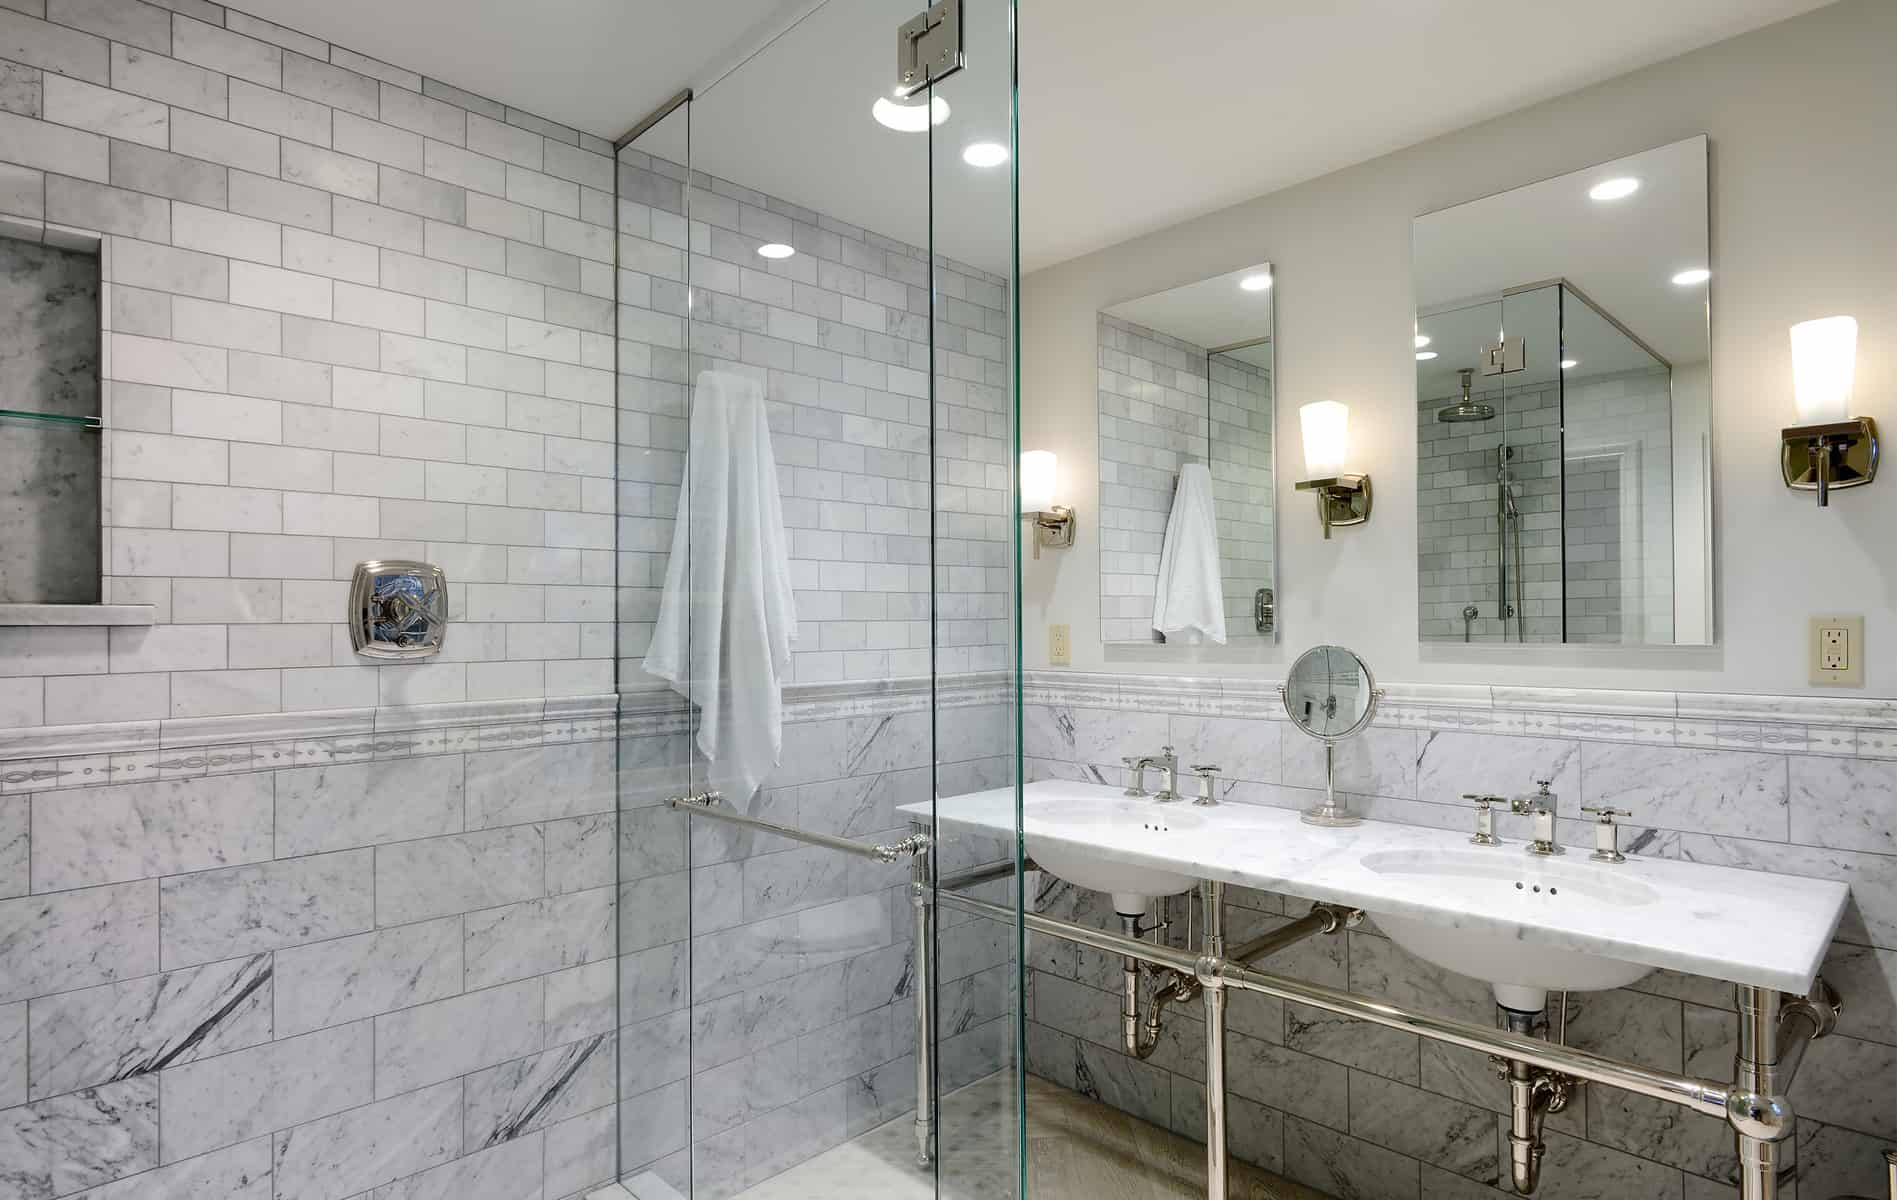 san bathroom renovation antonio tx dunn contractors services remodel wright remodeling